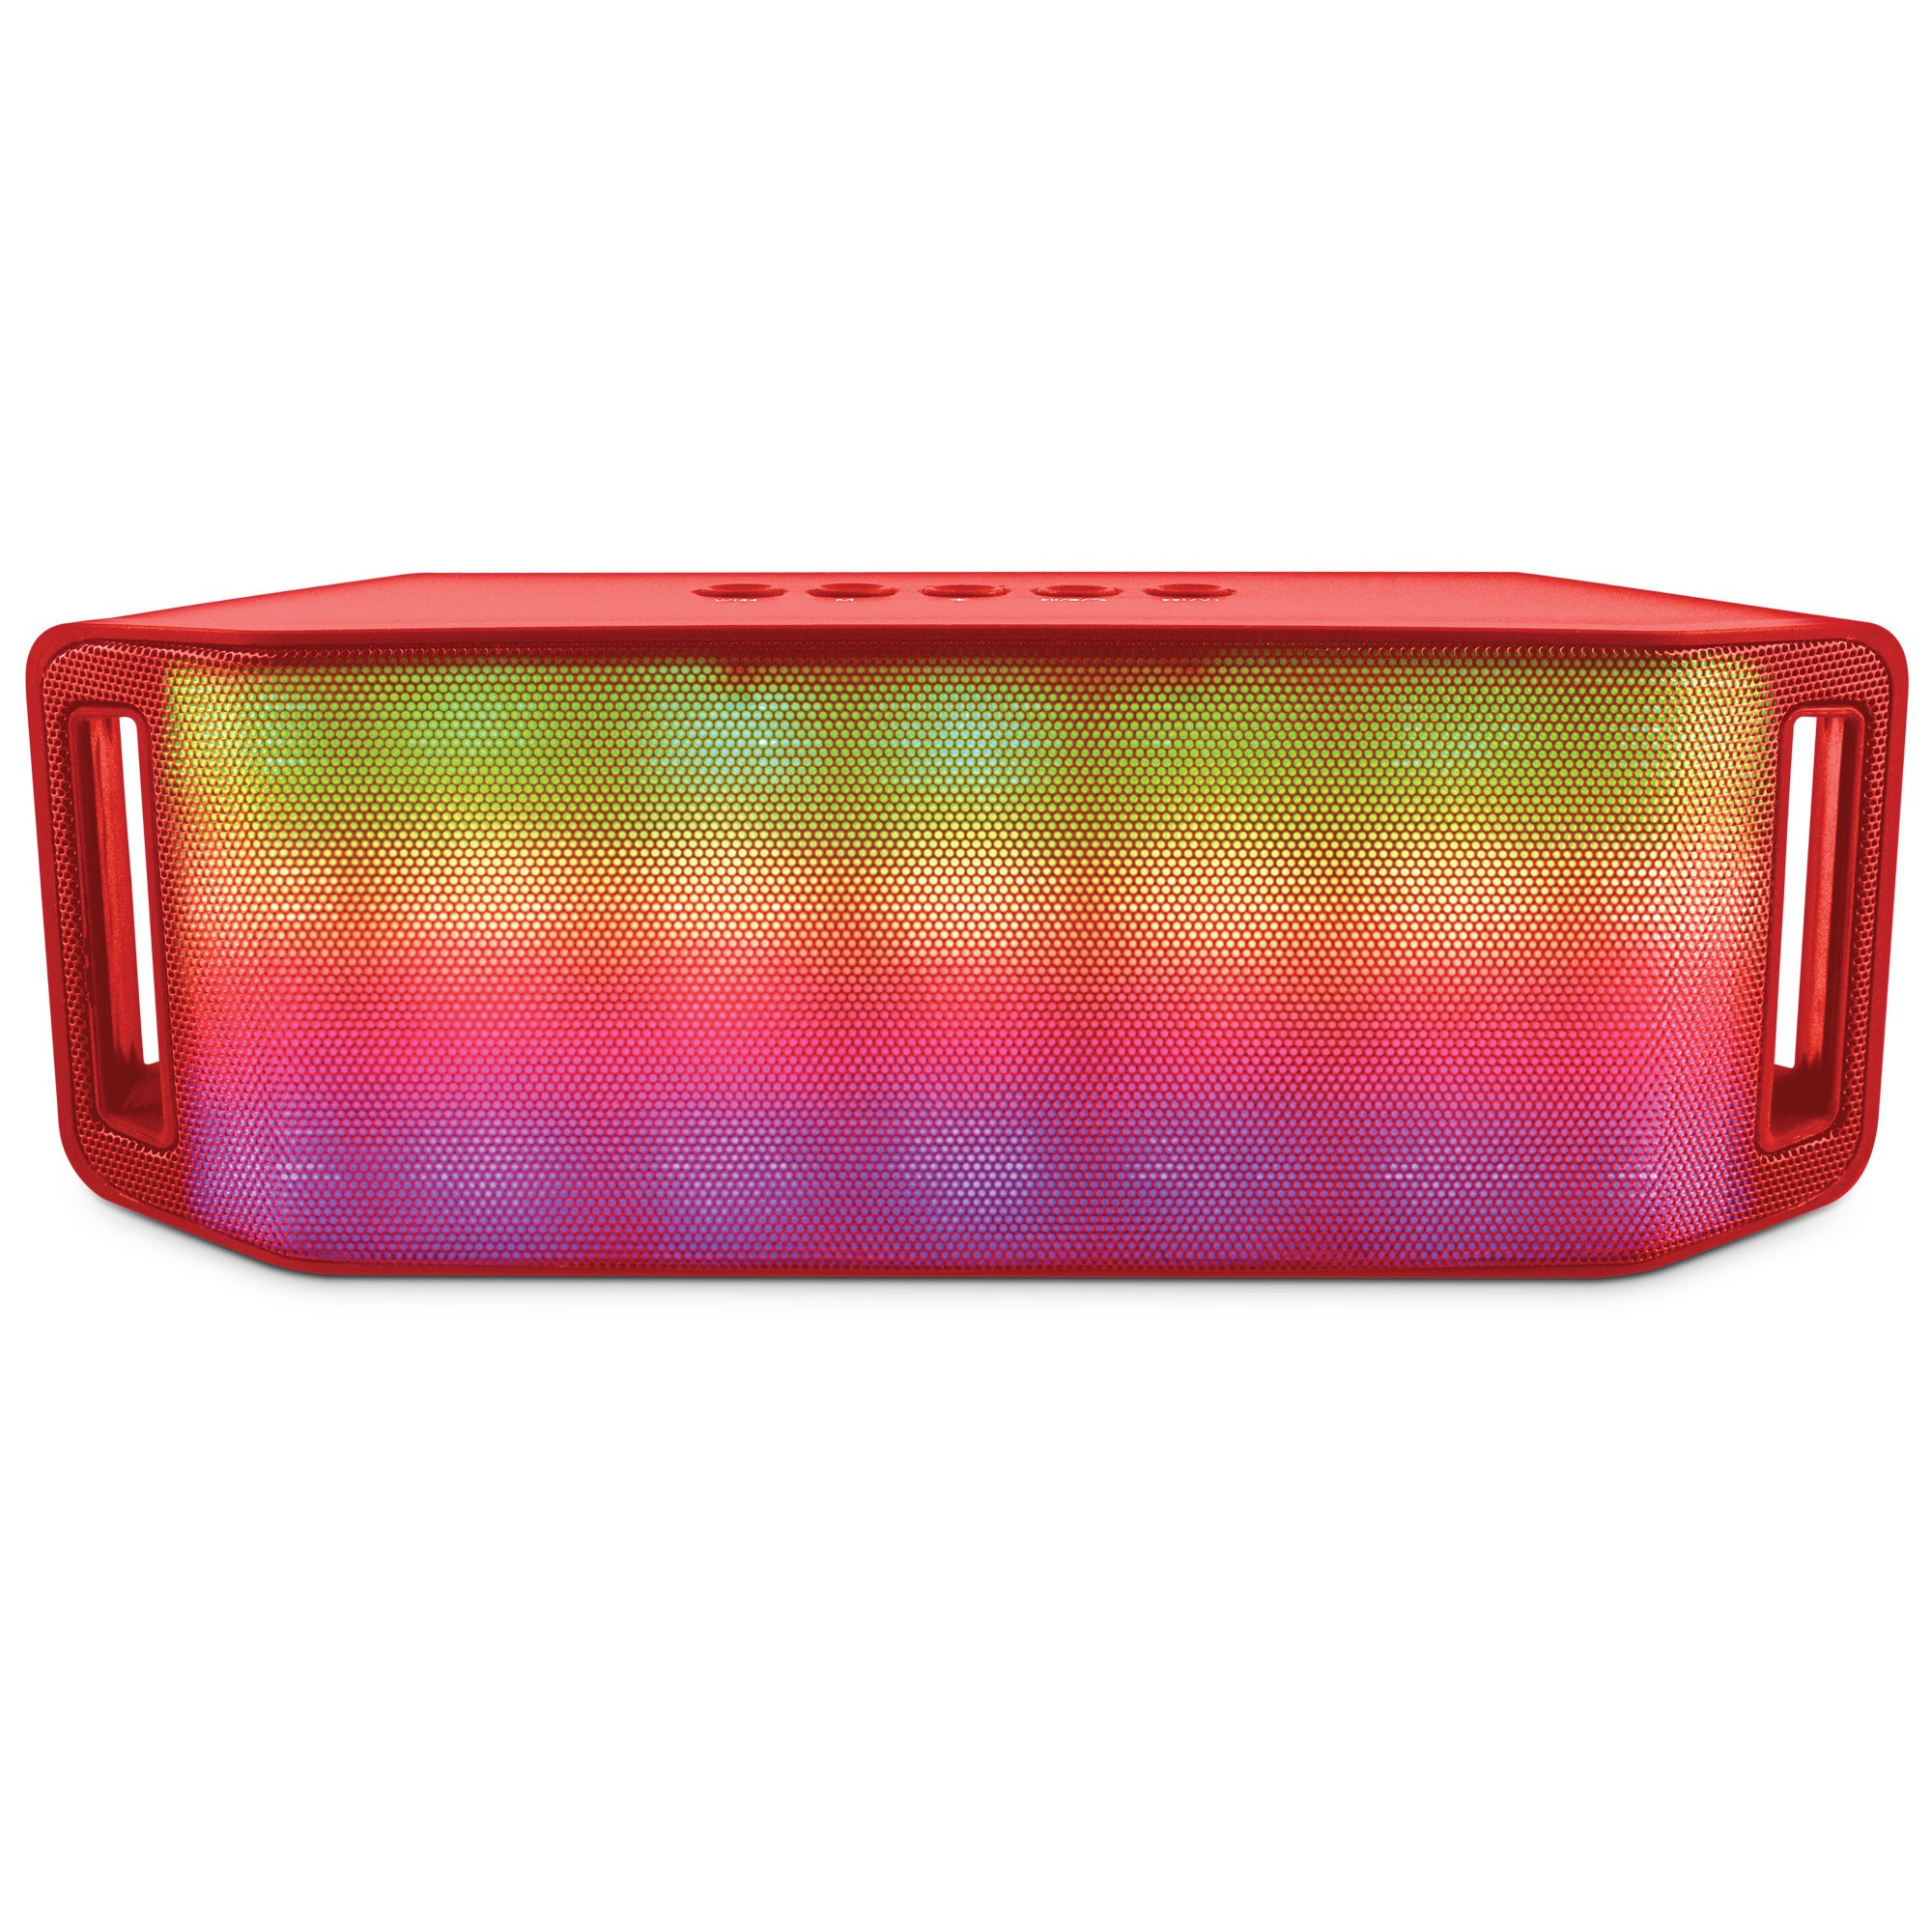 HyperGear Portable Rave Wireless Stereo Speaker Plays Booming Sound With An Interactive Multi-colored Light Show, Built-in Speakerphone & Built-in FM Radio. Pair Any Bluetooth Device Up To 8 hrs (Red) by HyperGear